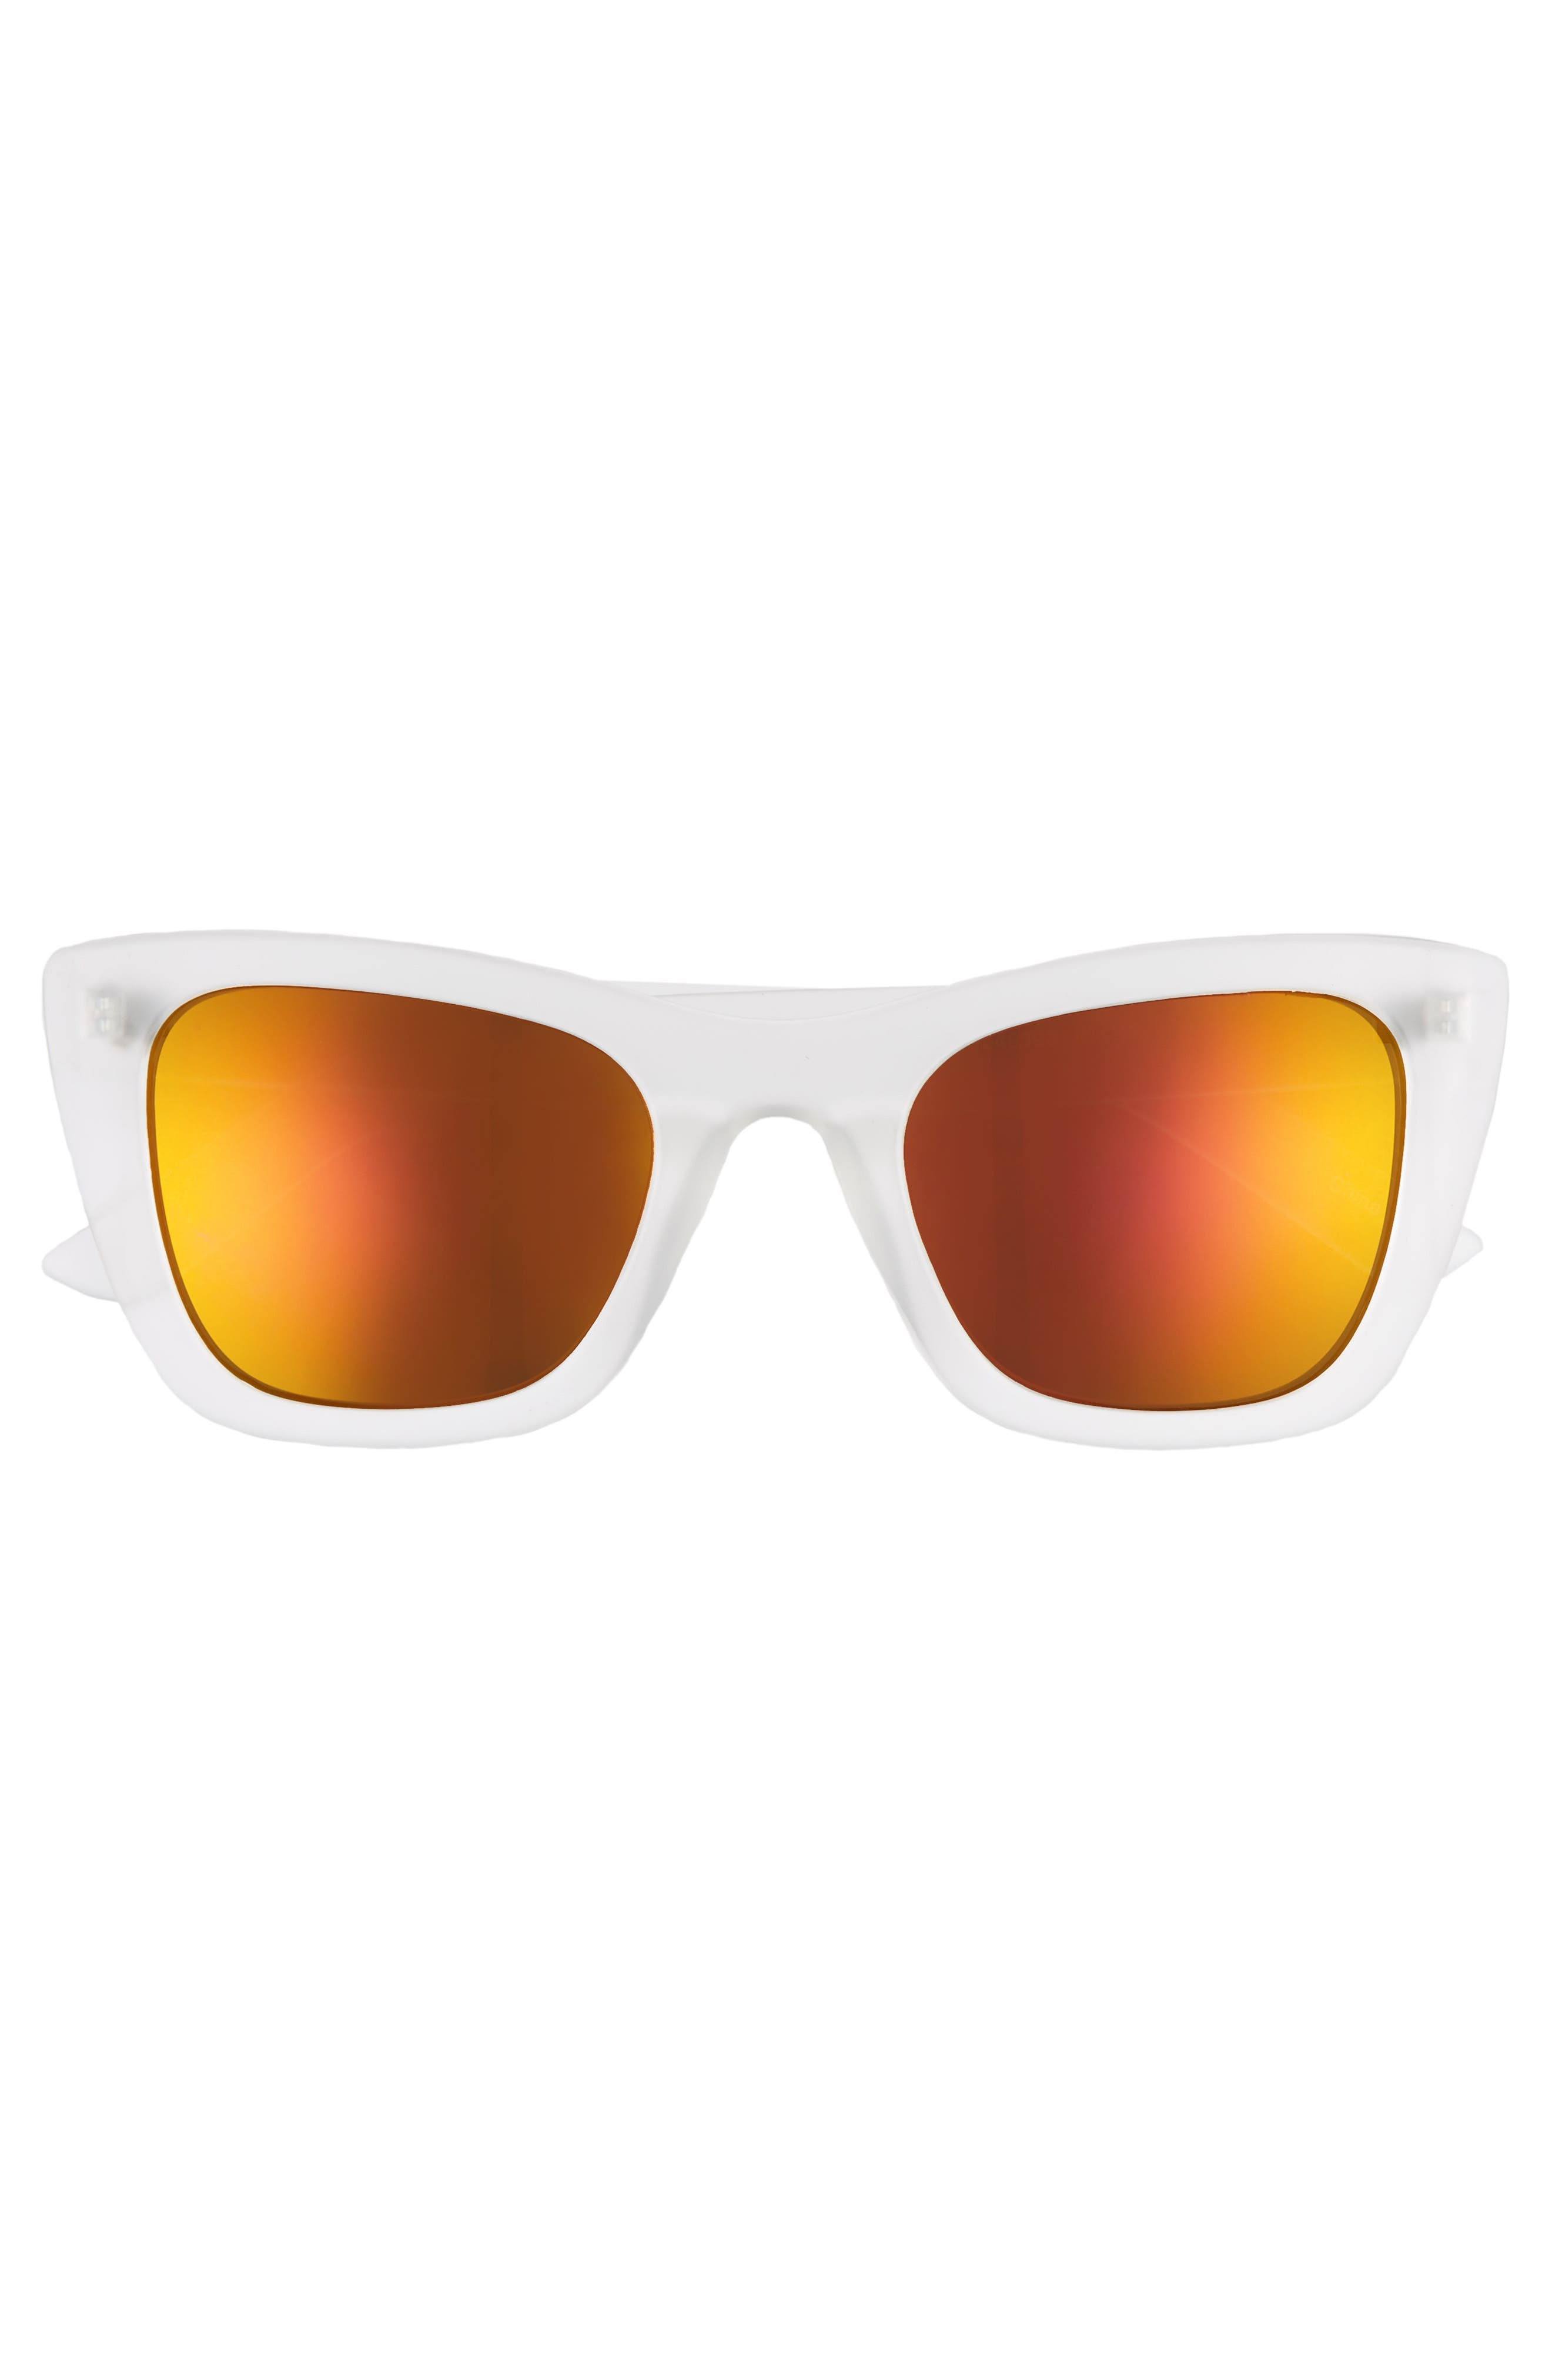 51mm Translucent Square Sunglasses,                             Alternate thumbnail 3, color,                             CLEAR/ GOLD